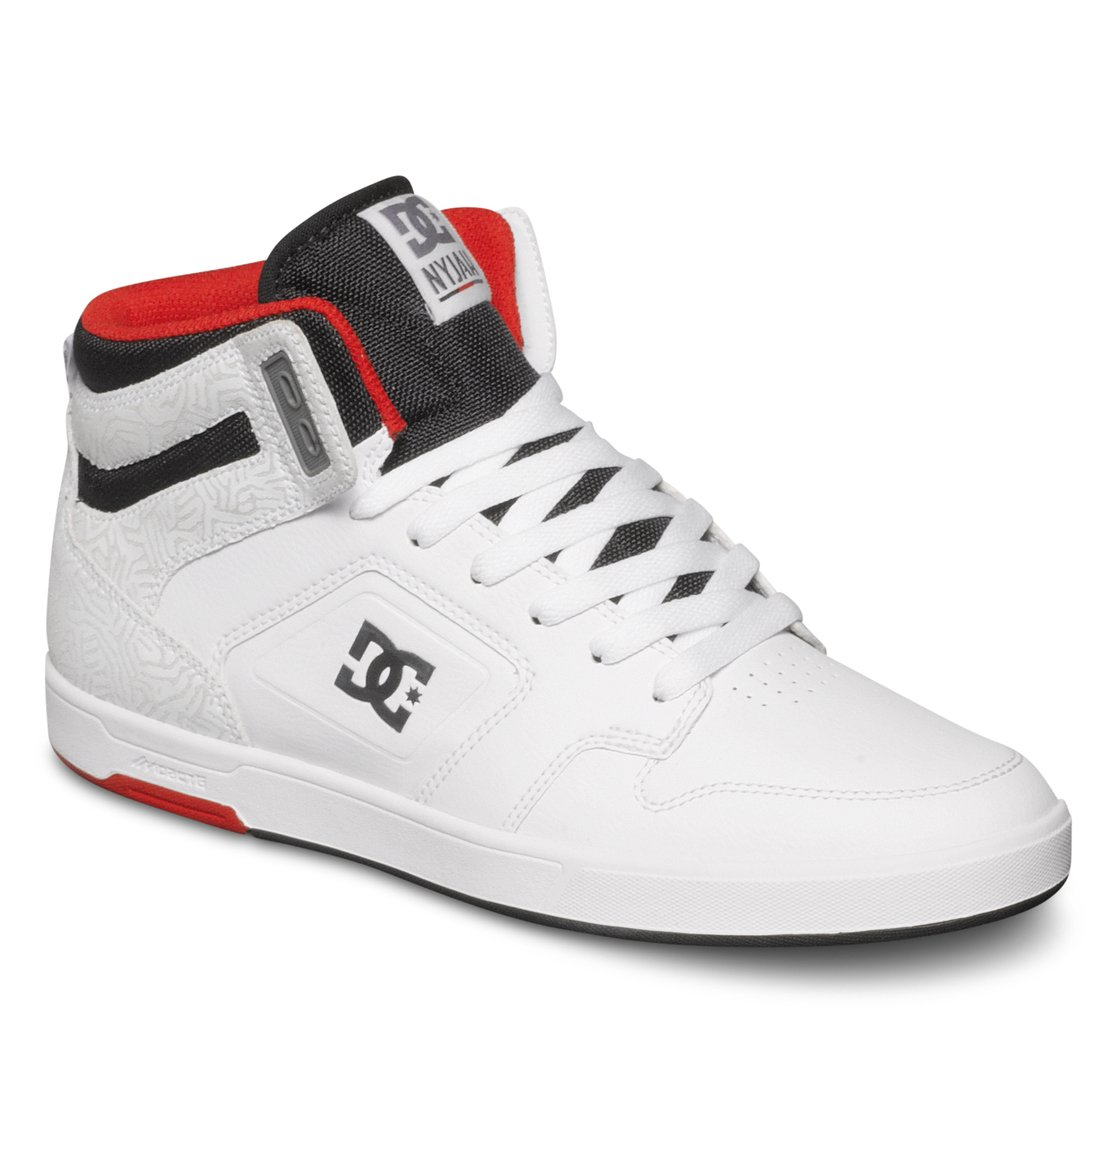 Nyjah High Dc Shoes